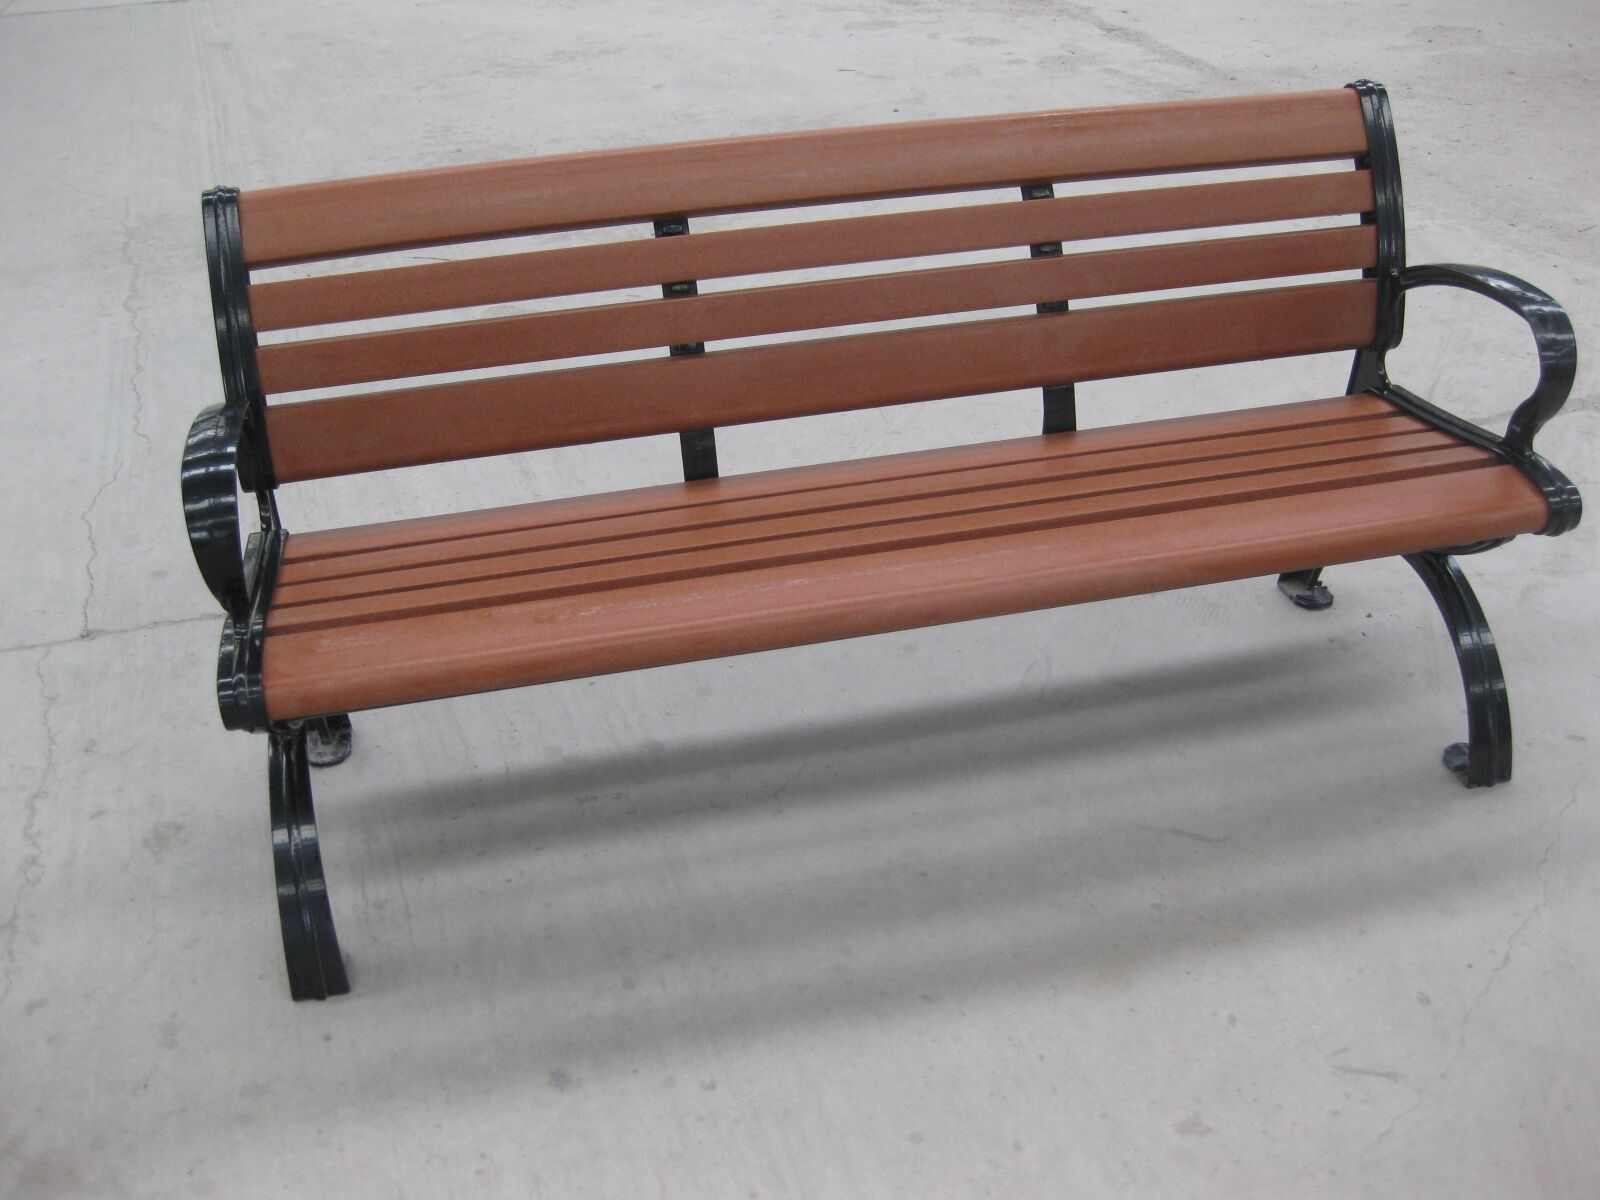 outdoor bench Red brown color